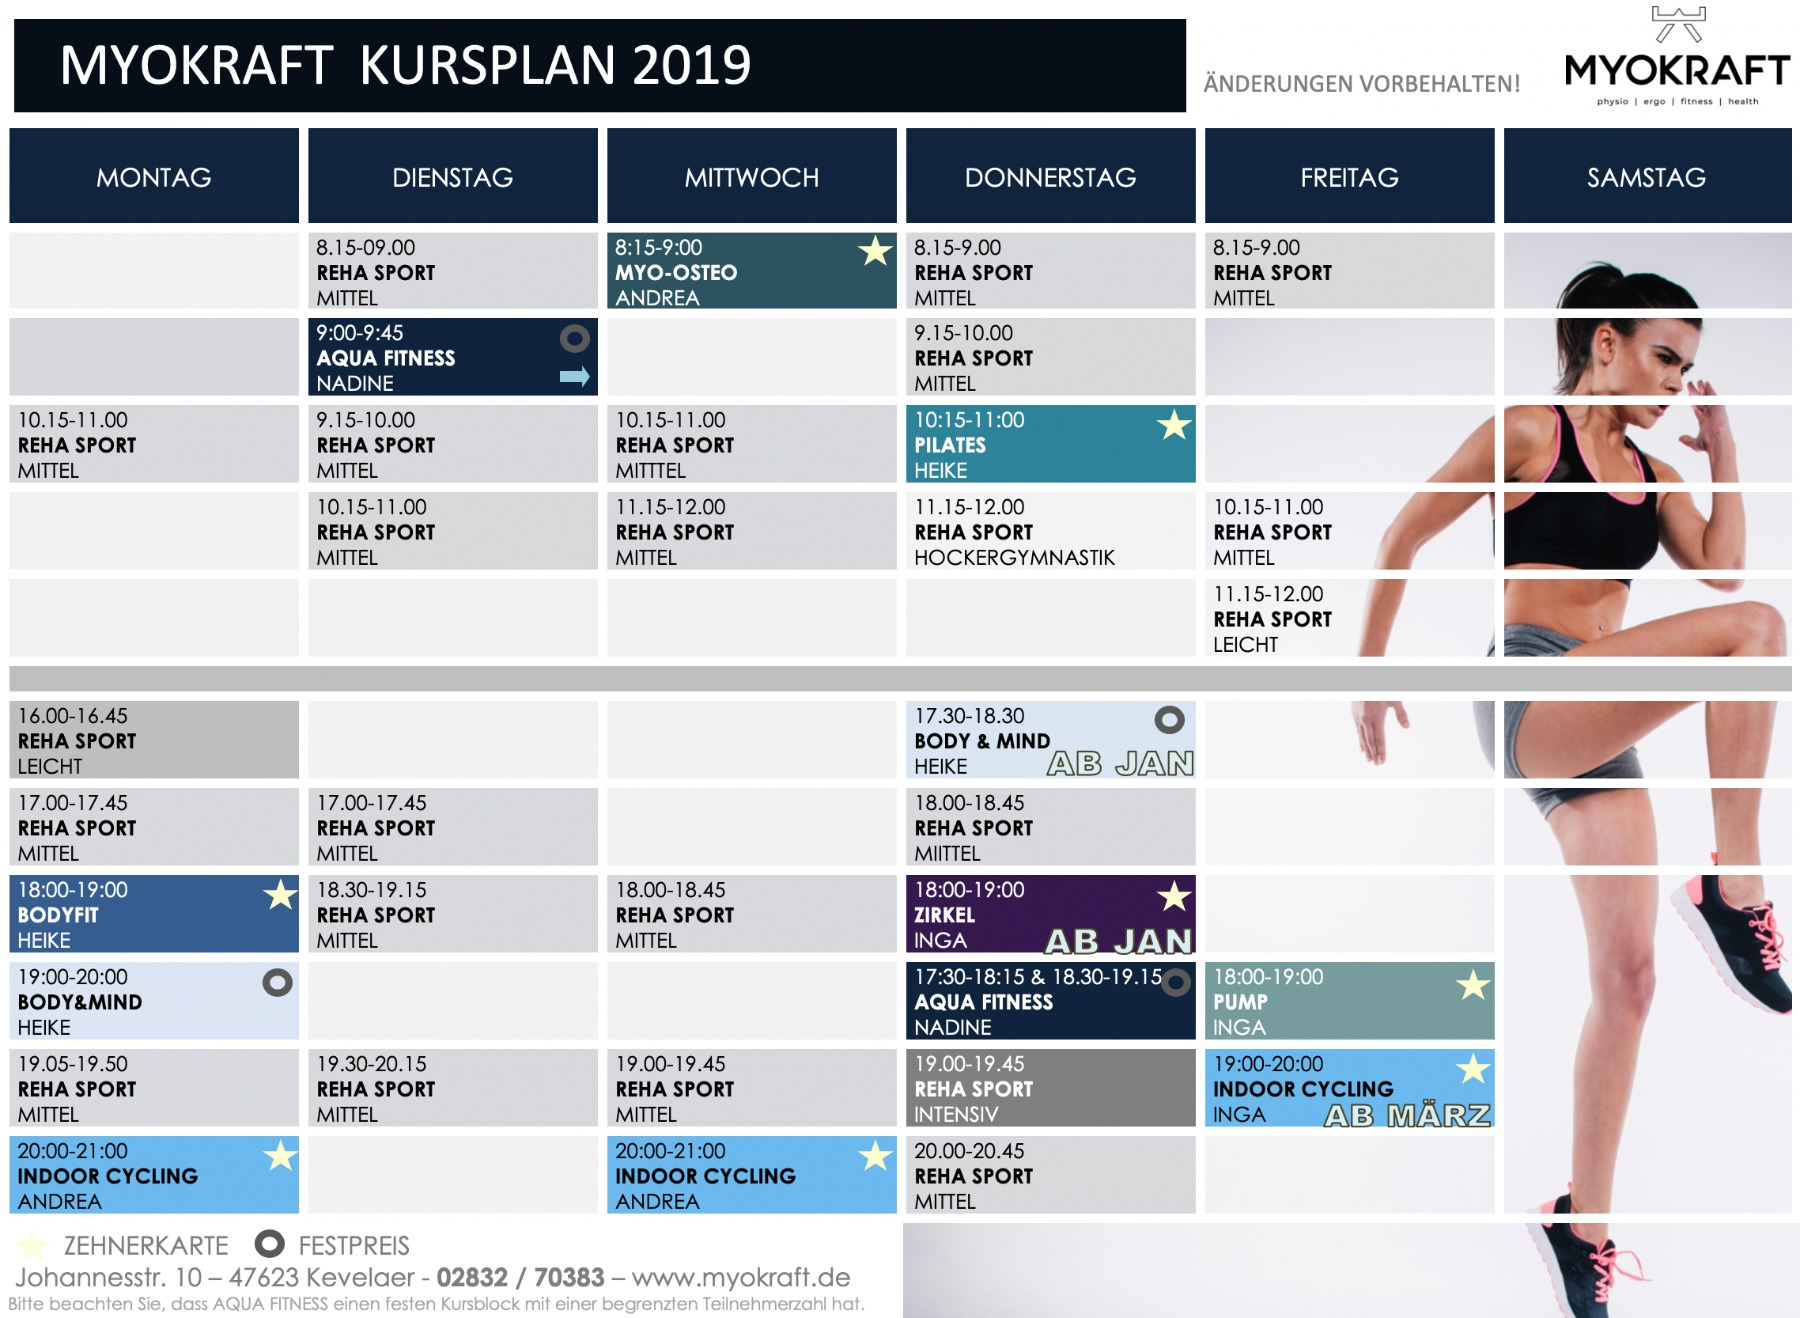 Kursplan Myokraft April 2019